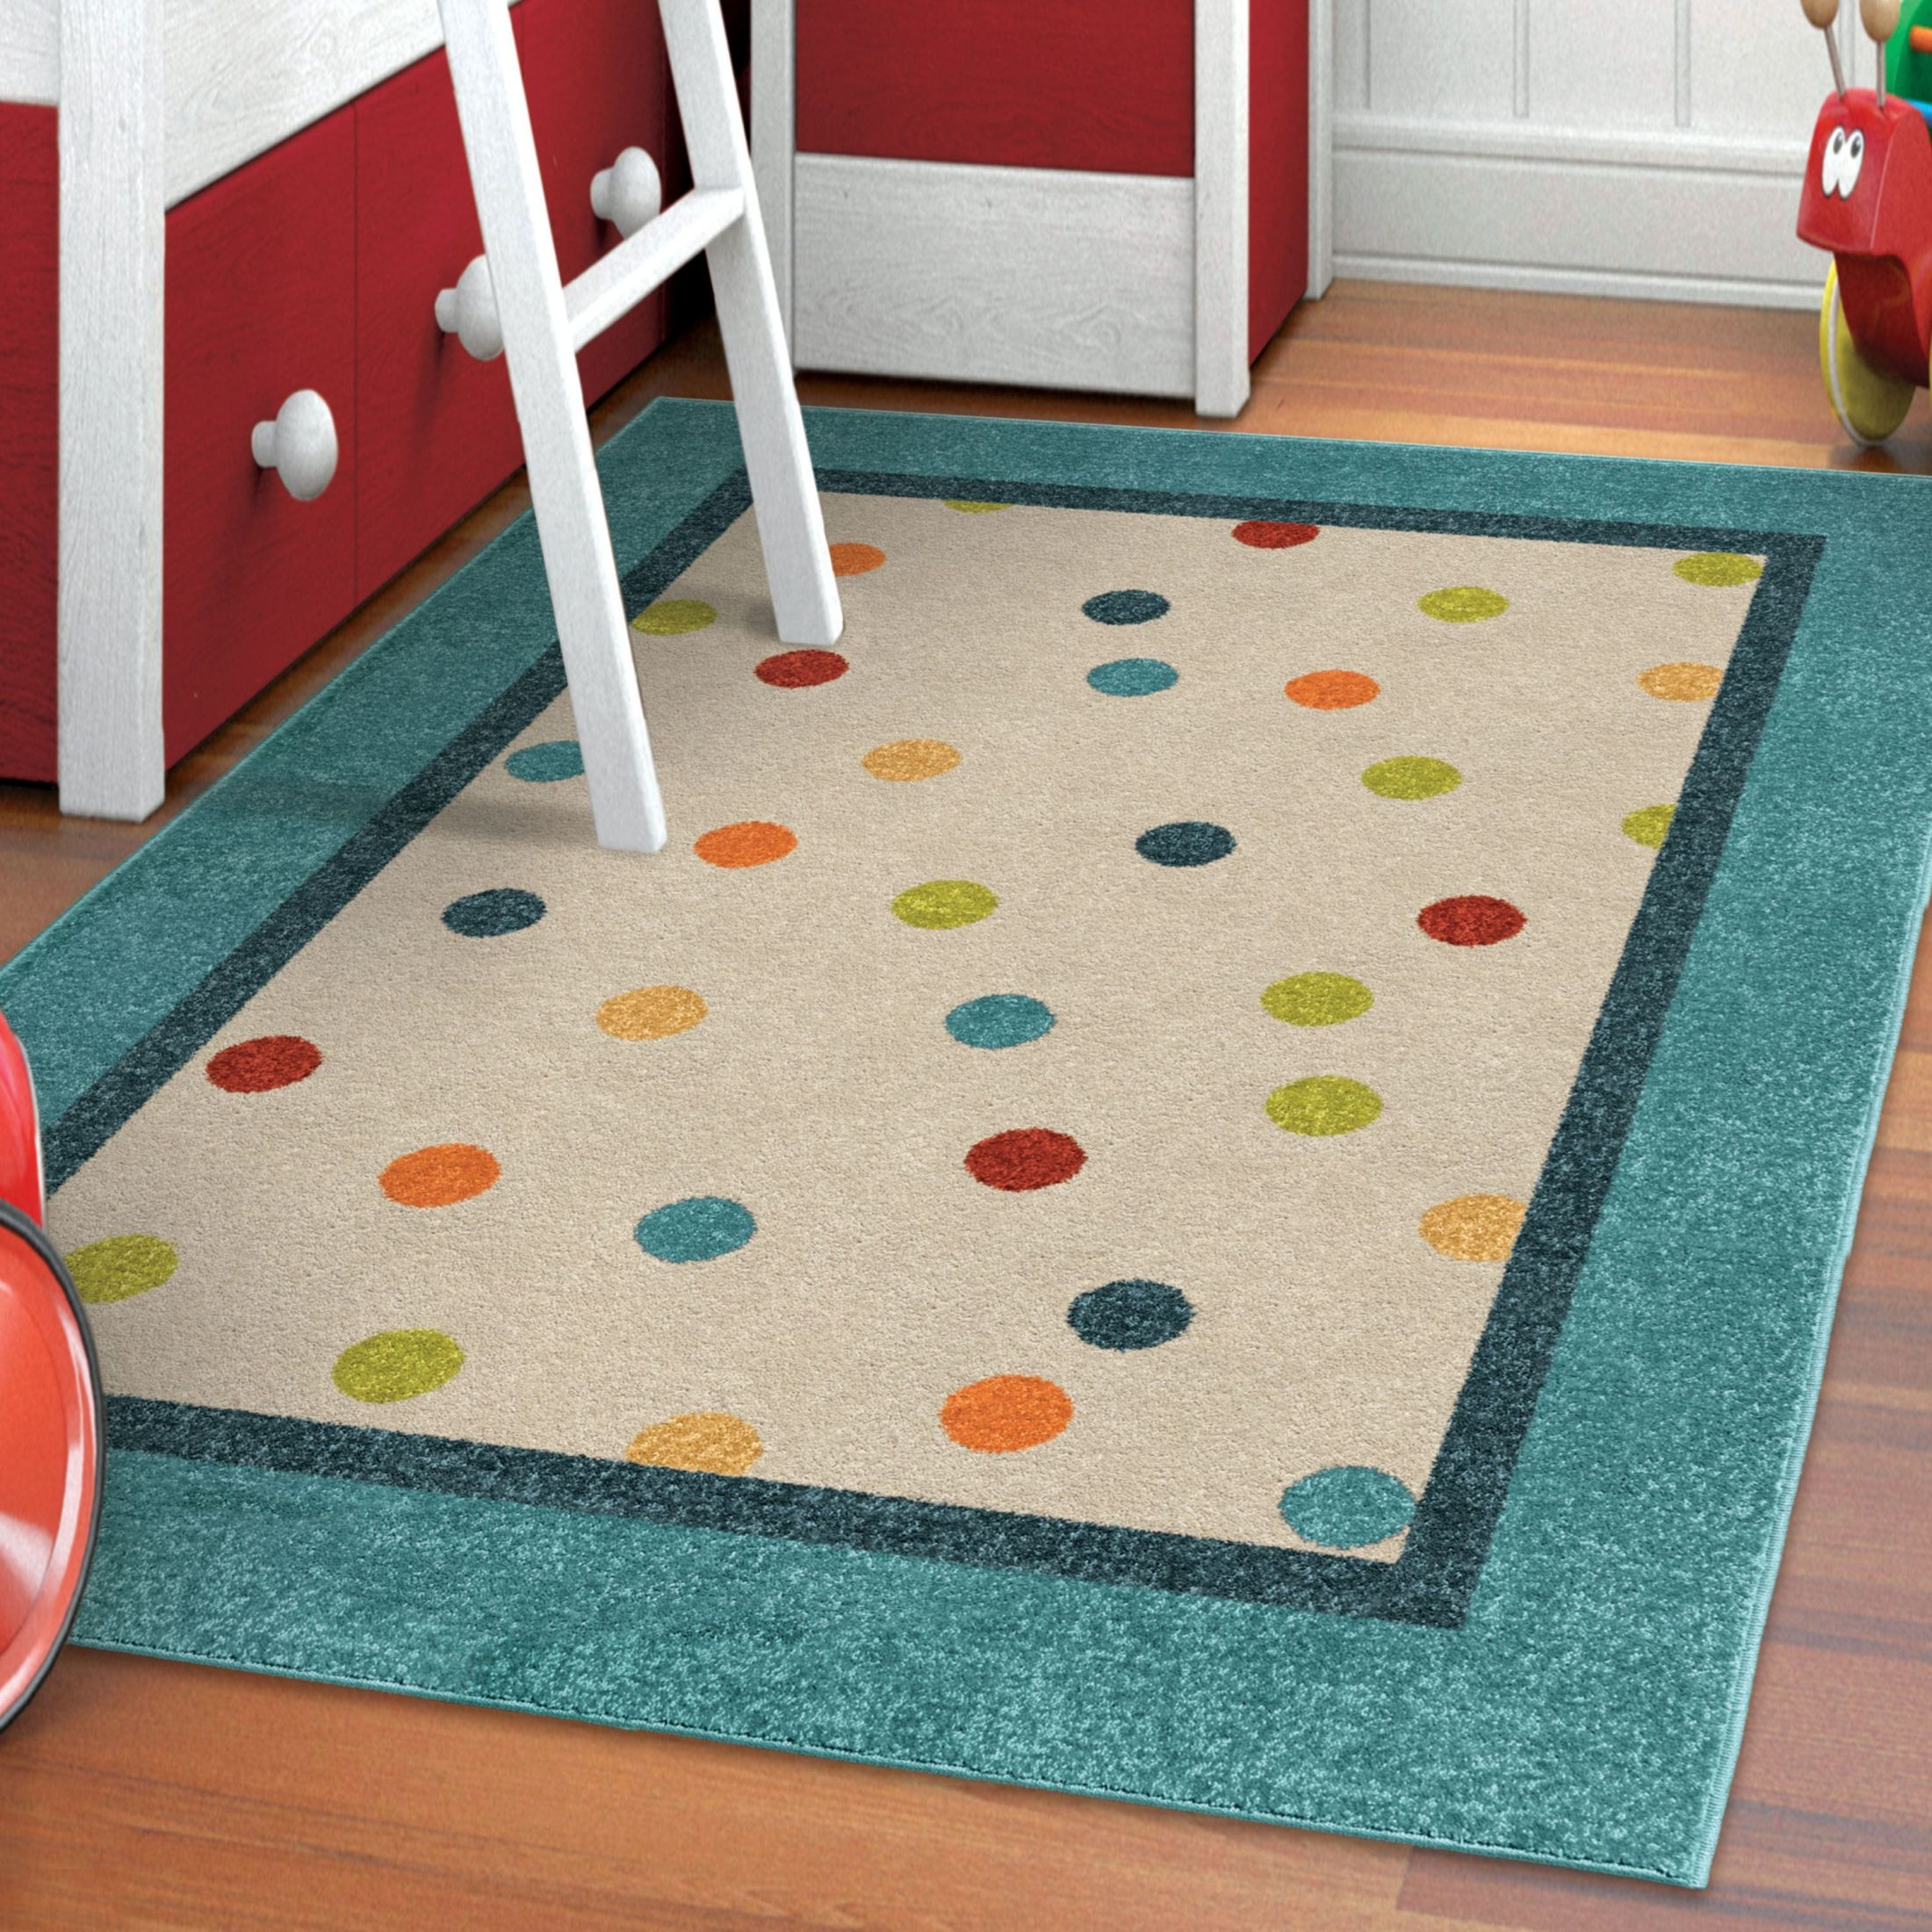 Kids Court Kids Polka Dots Polka Multi Small Area Rug From